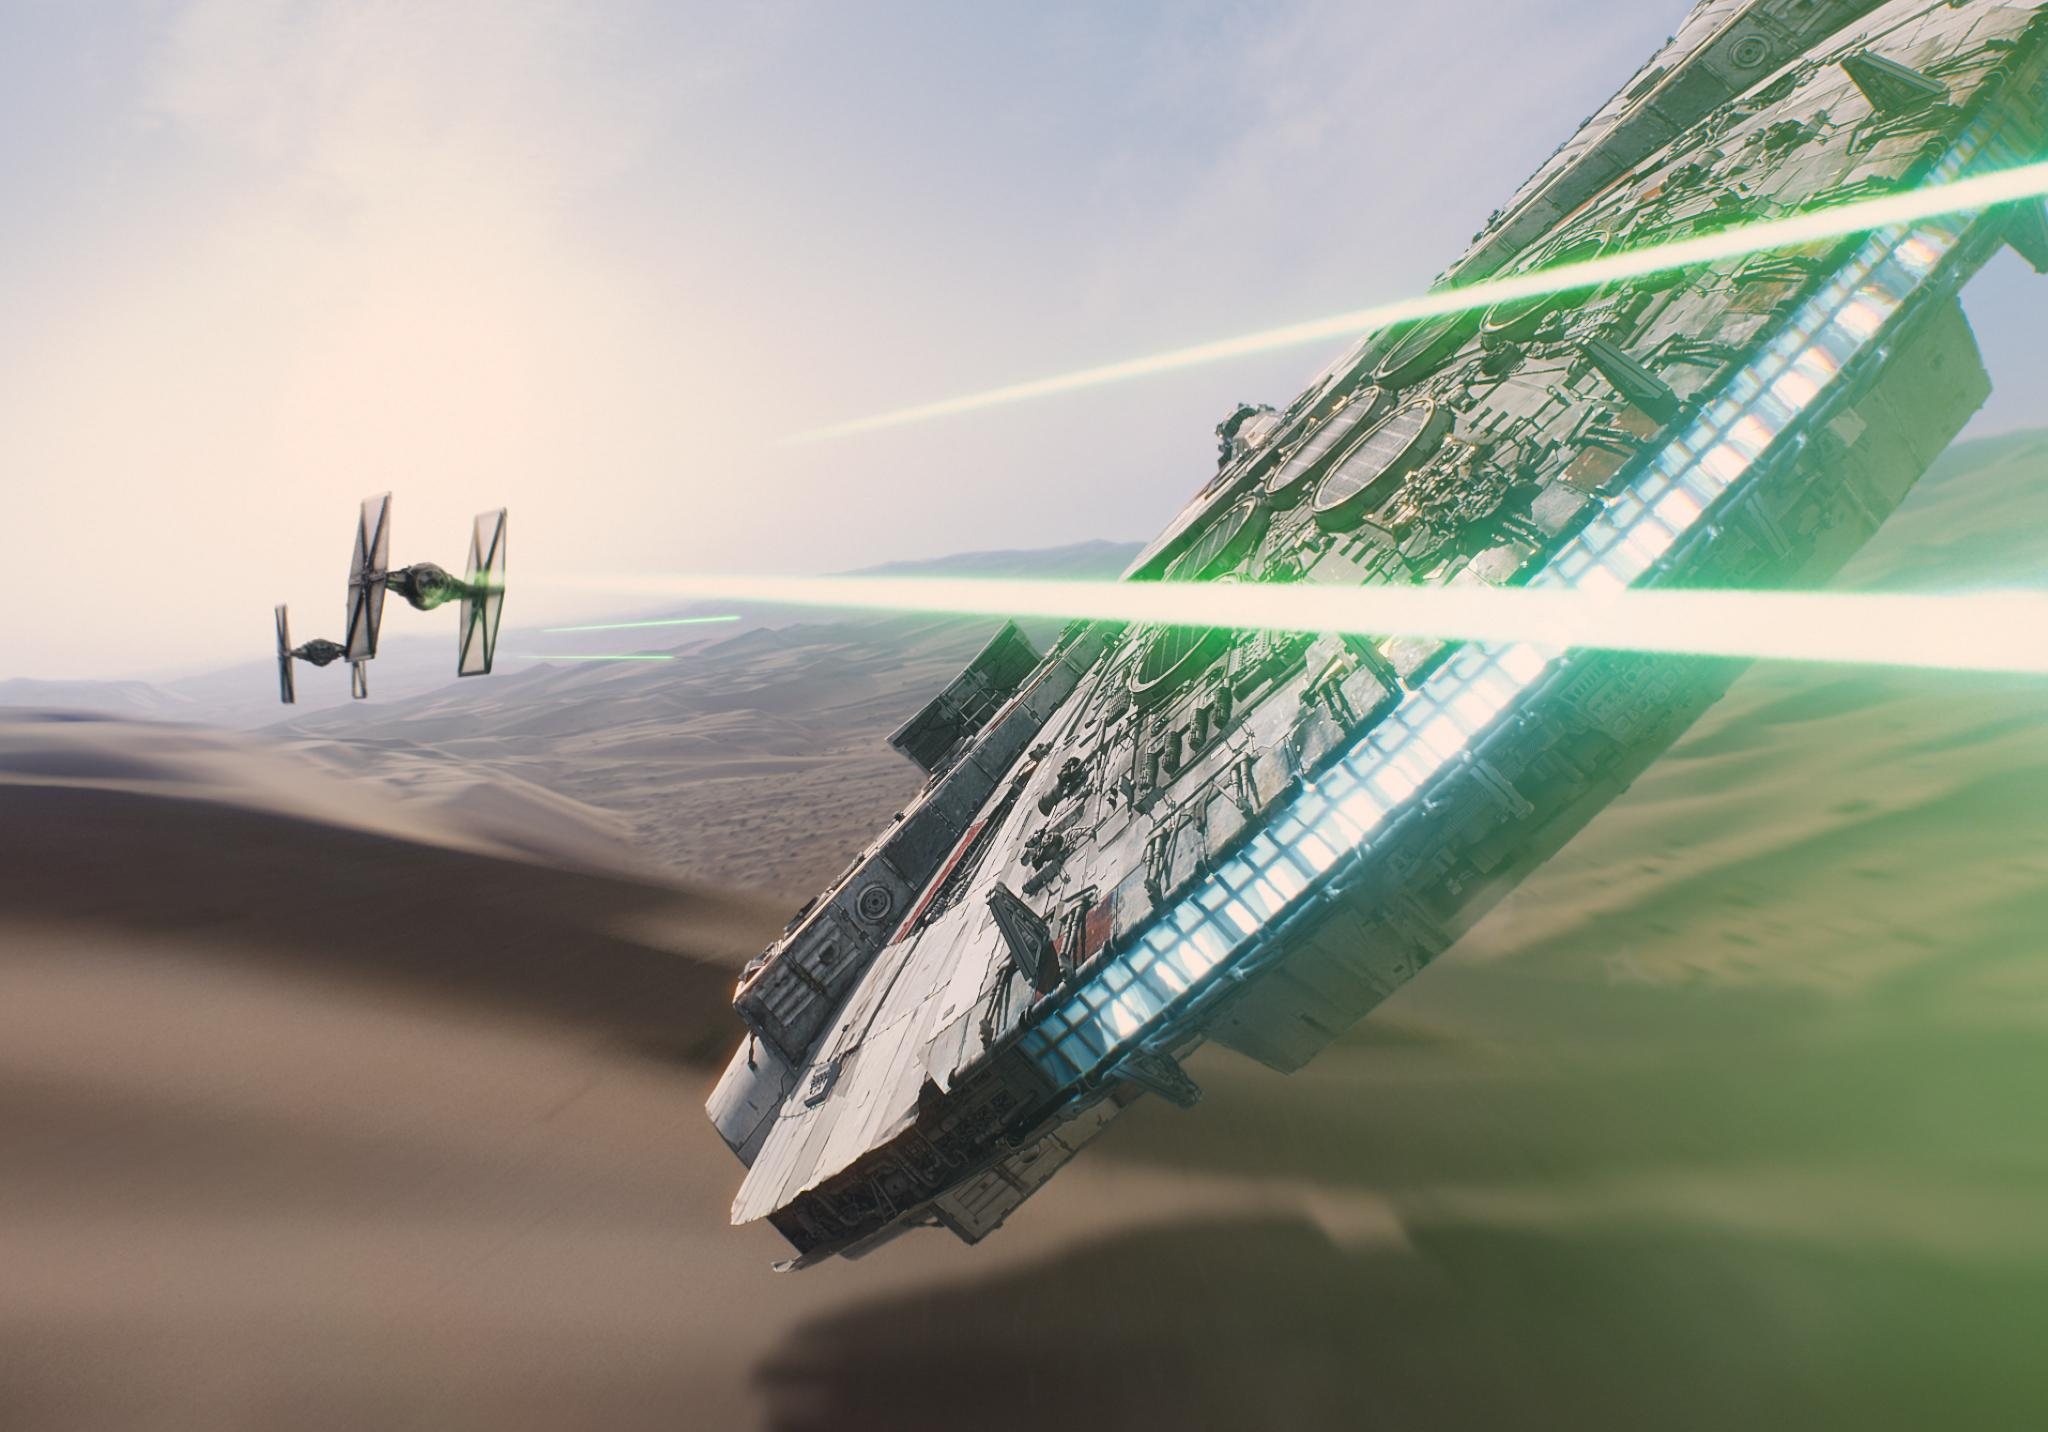 The Millennium Falcon is the real culprit of Star Wars' commercialisation - SHOOT TO KILL!'